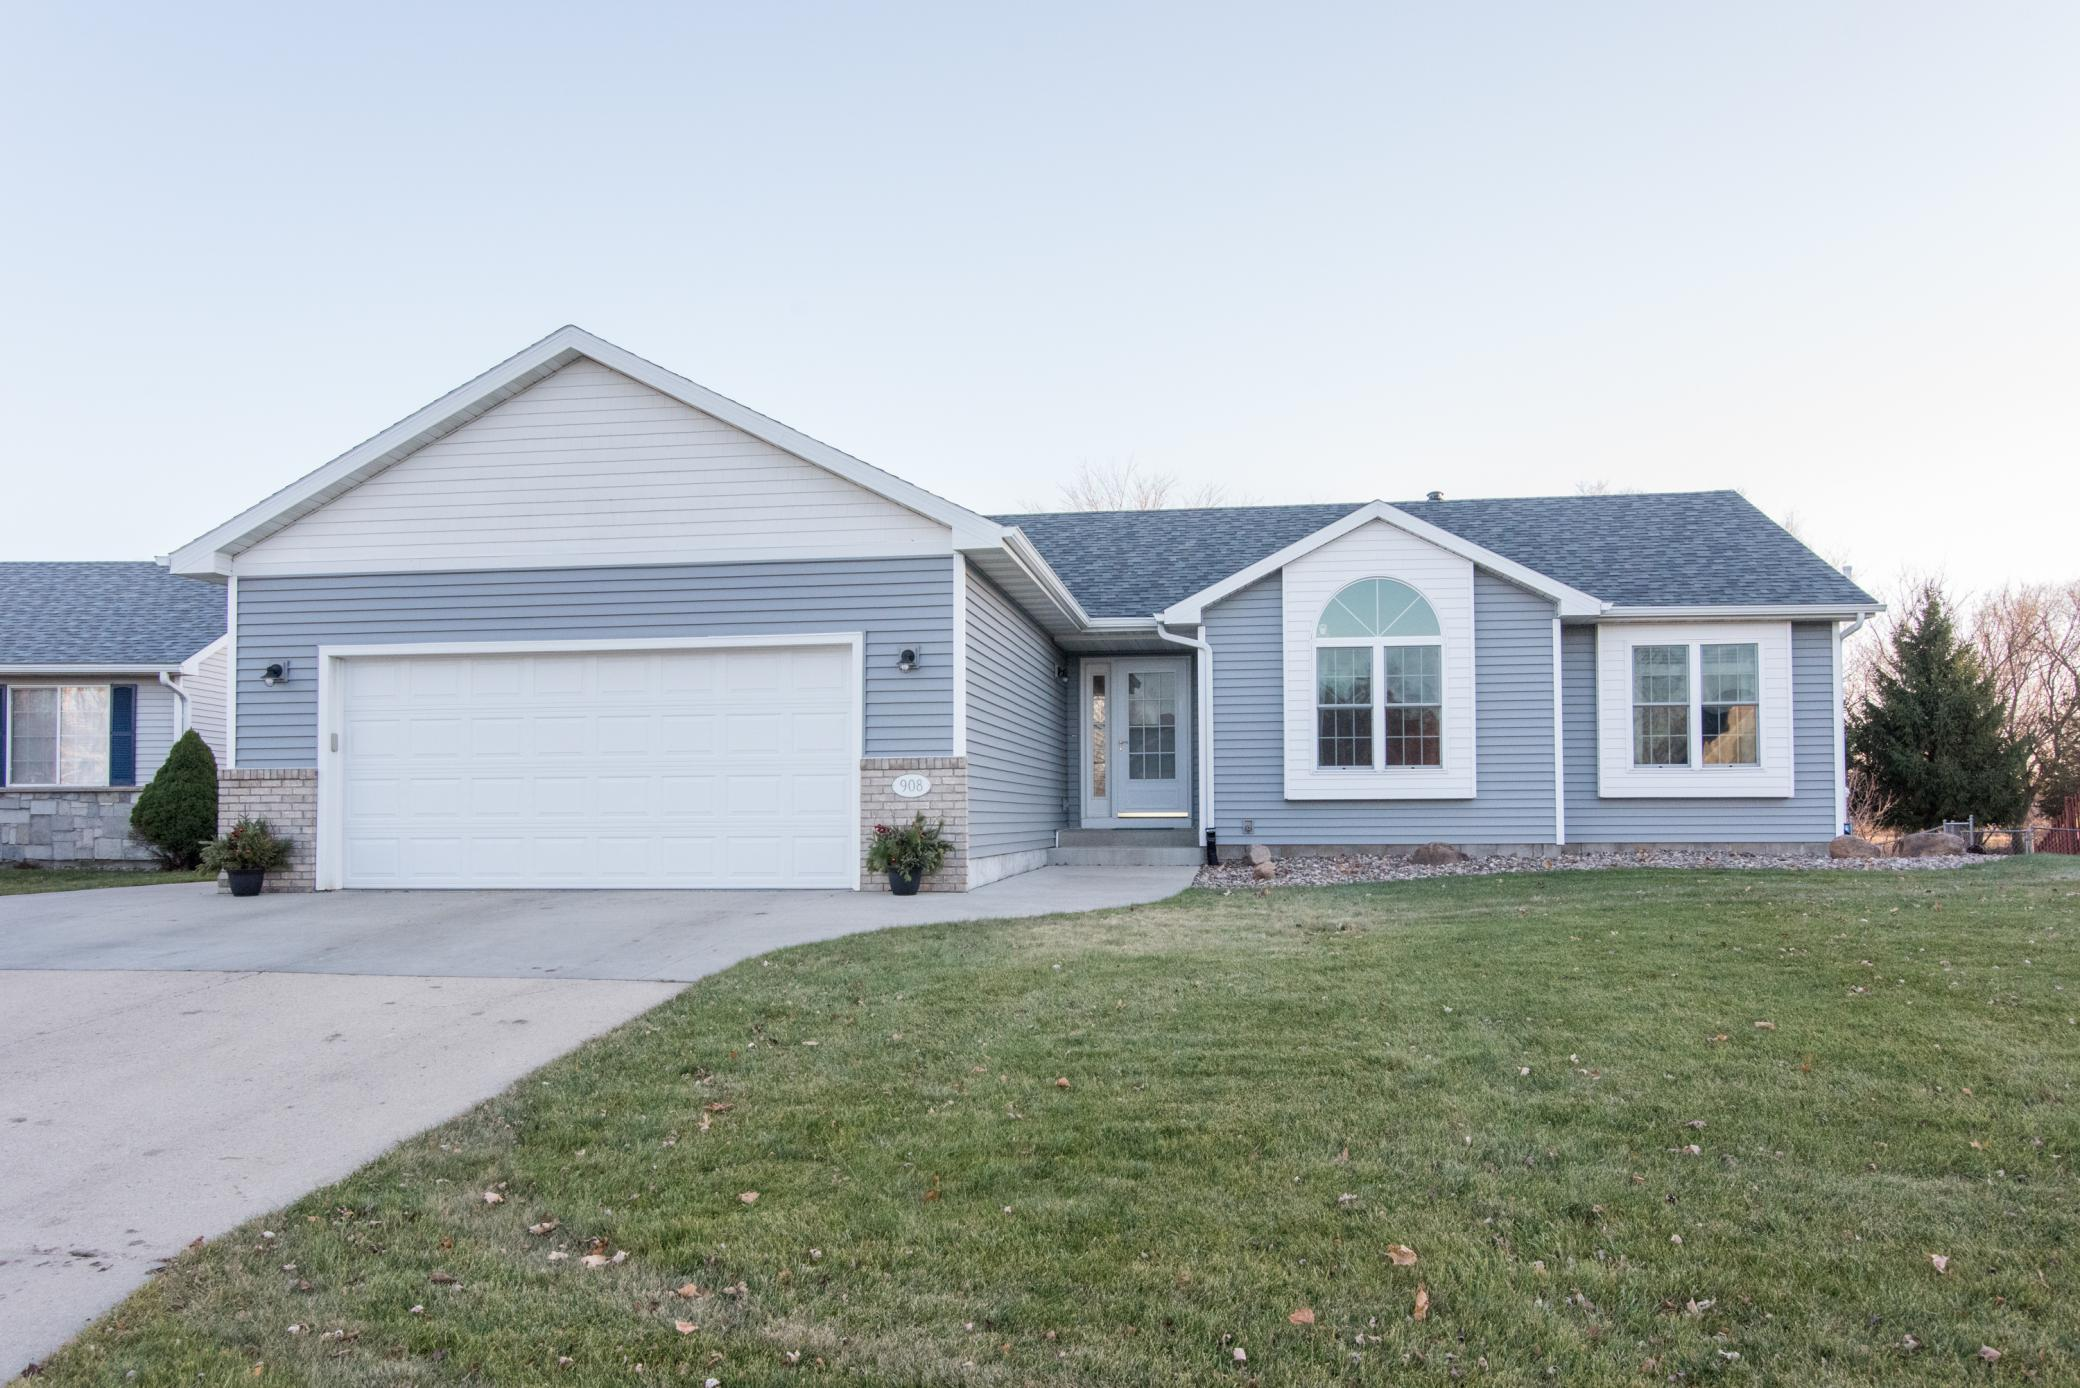 908 3rd Street NE Property Photo - Kasson, MN real estate listing